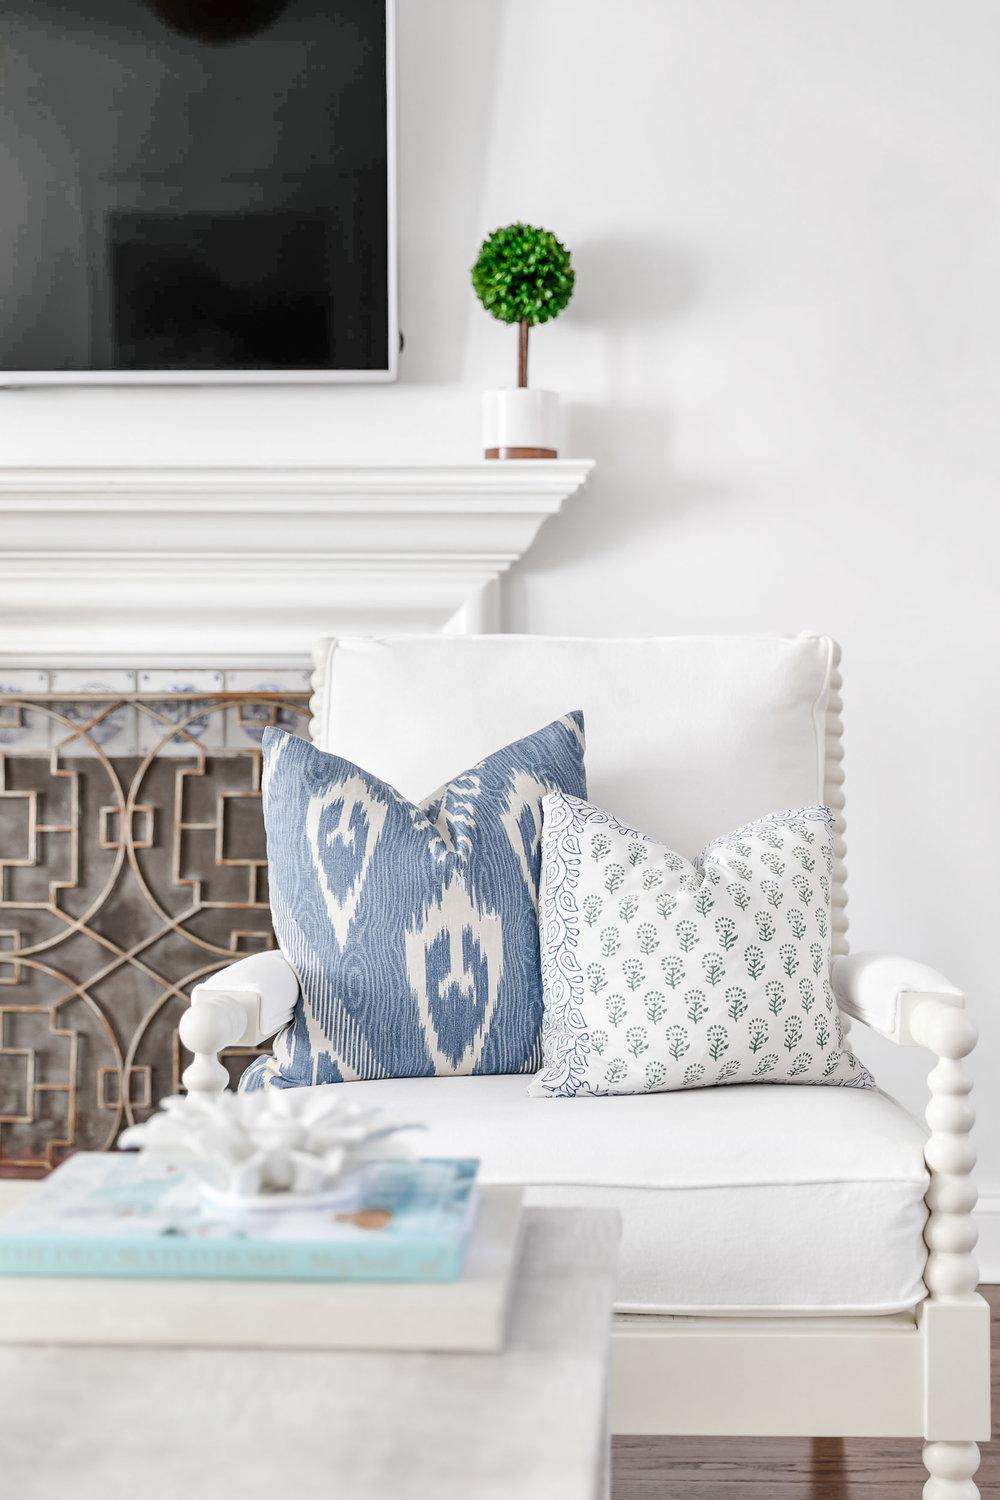 Product photography of white spindle chairs and accent pillows in a Riverside, Connecticut home.